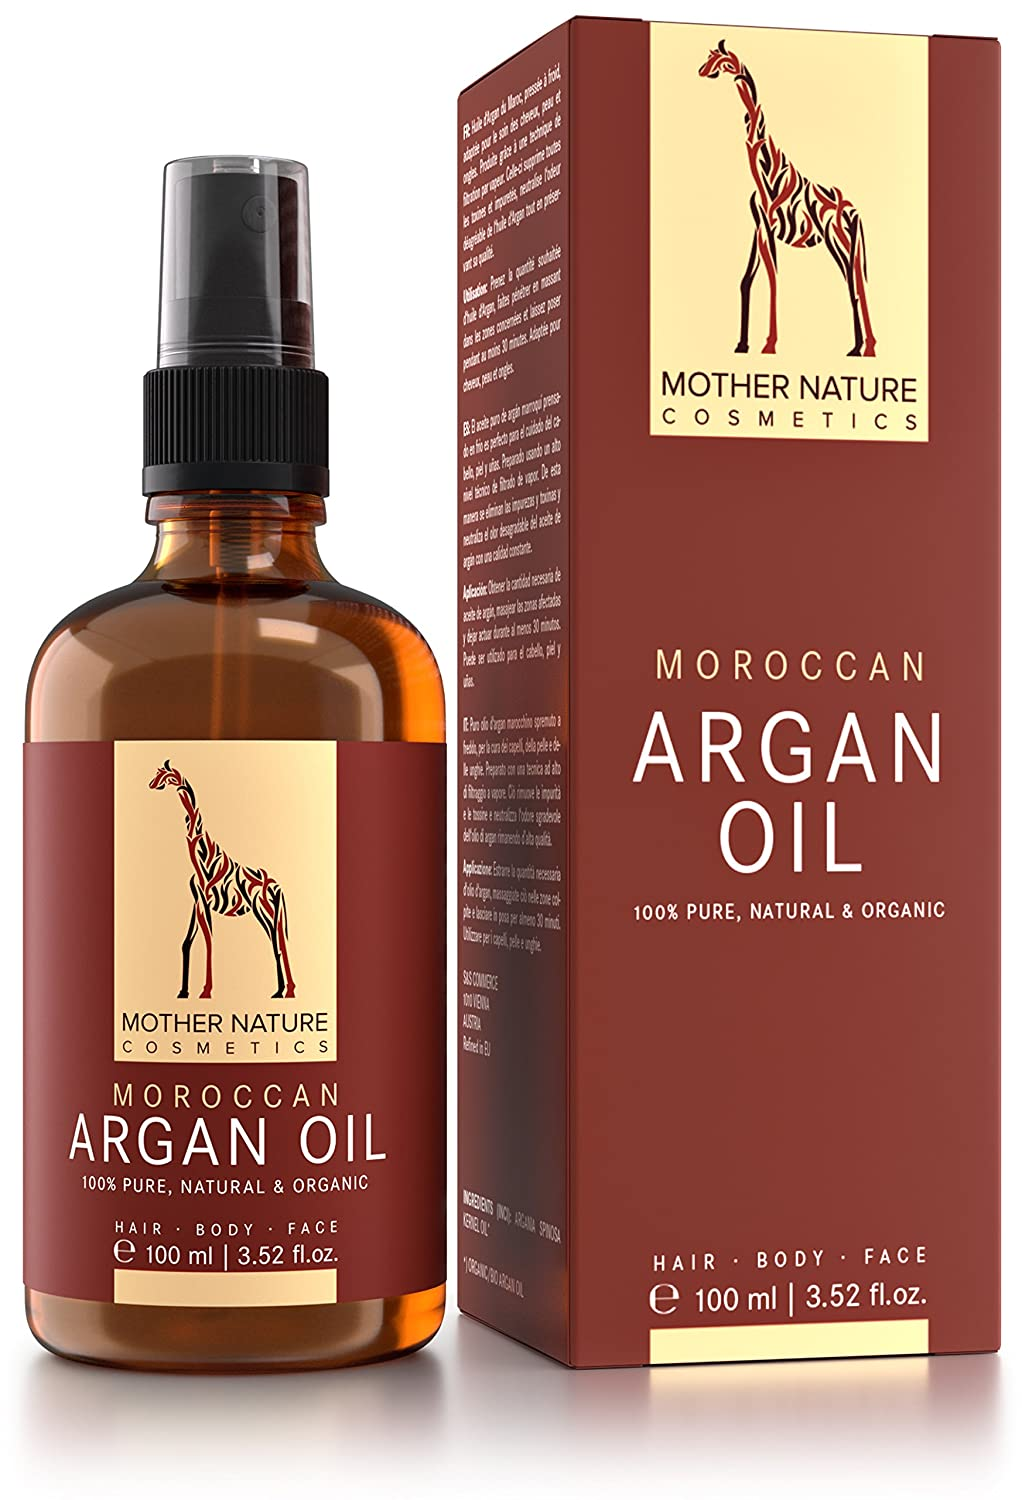 Mother Nature ♥♥ Argan Oil ♥♥ Cold Pressed from Morocco - 100% Organic ★ Made in UK ★ 100ml - For Hair- and Skincare S&S GesbR